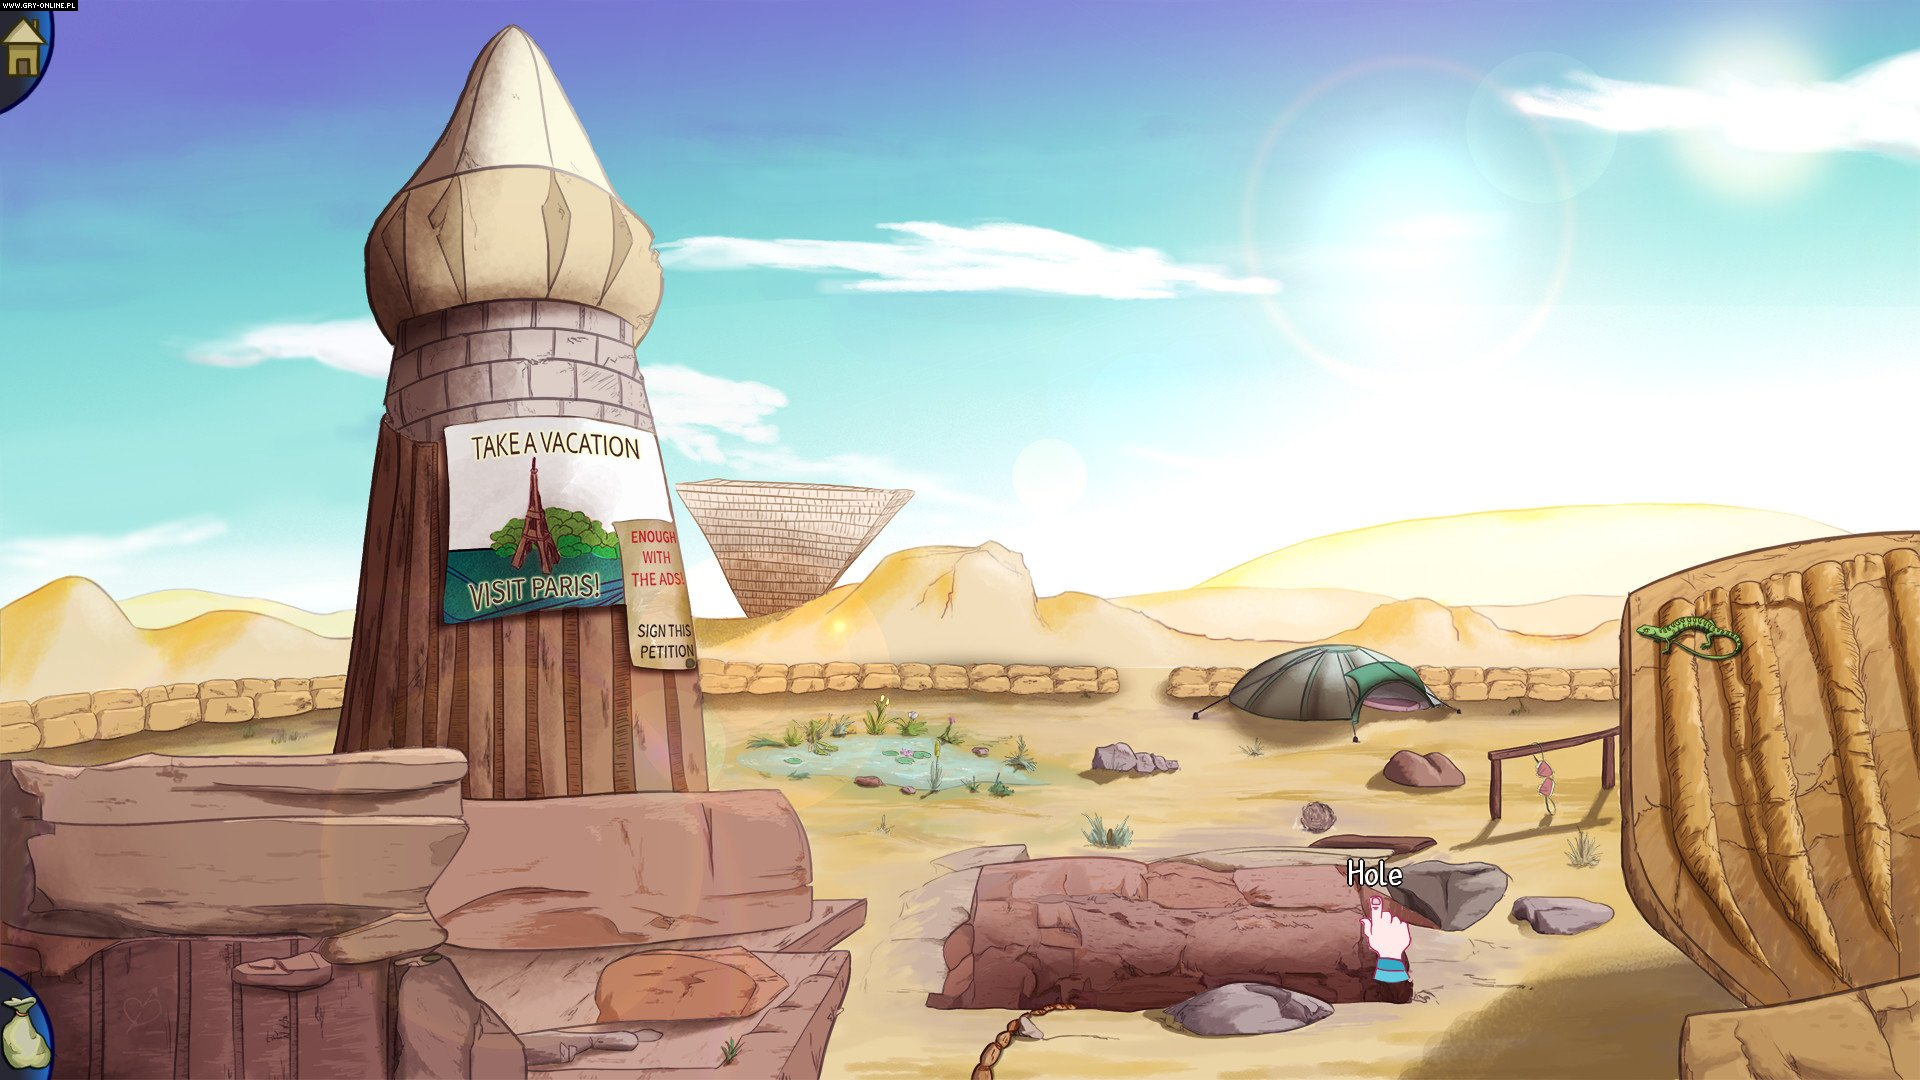 Demetrios: The BIG Cynical Adventure PC, PSV, PS4, XONE Games Image 10/10, COWCAT